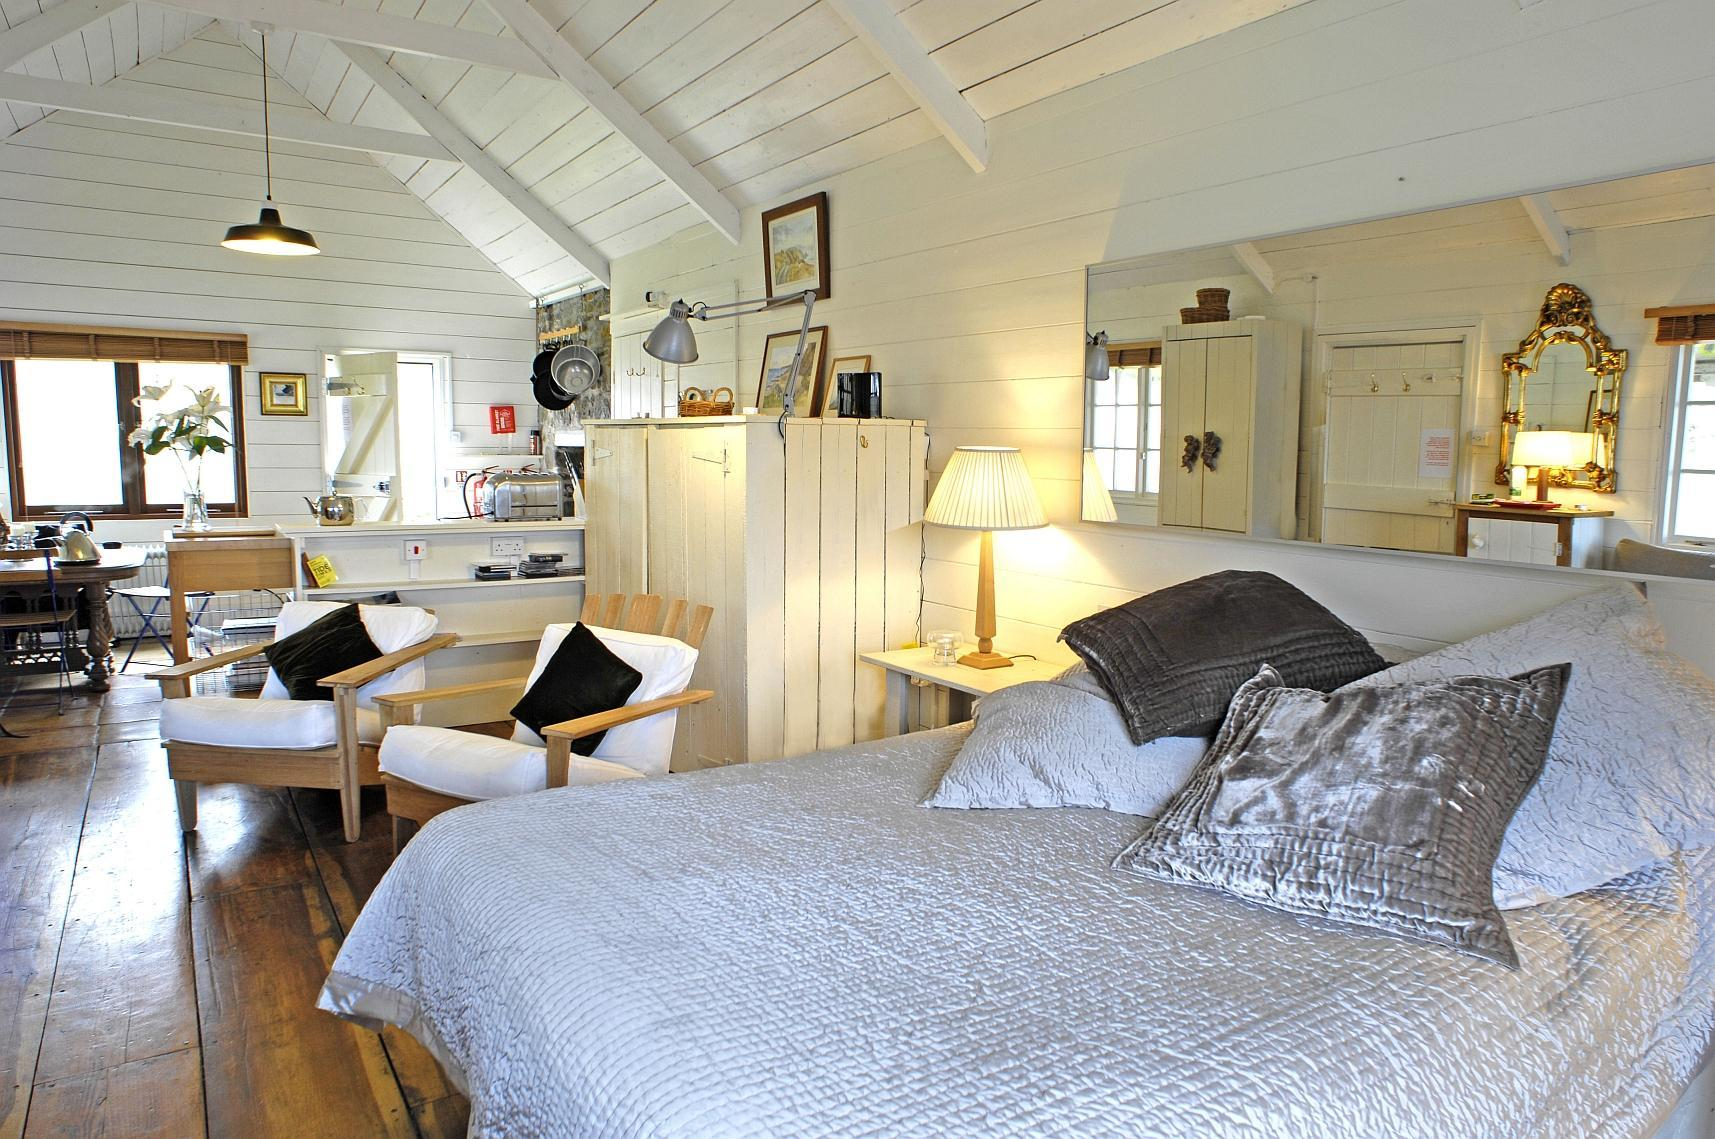 Gallery: The Beach Hut, a romantic retreat in Cornwall | Small ...